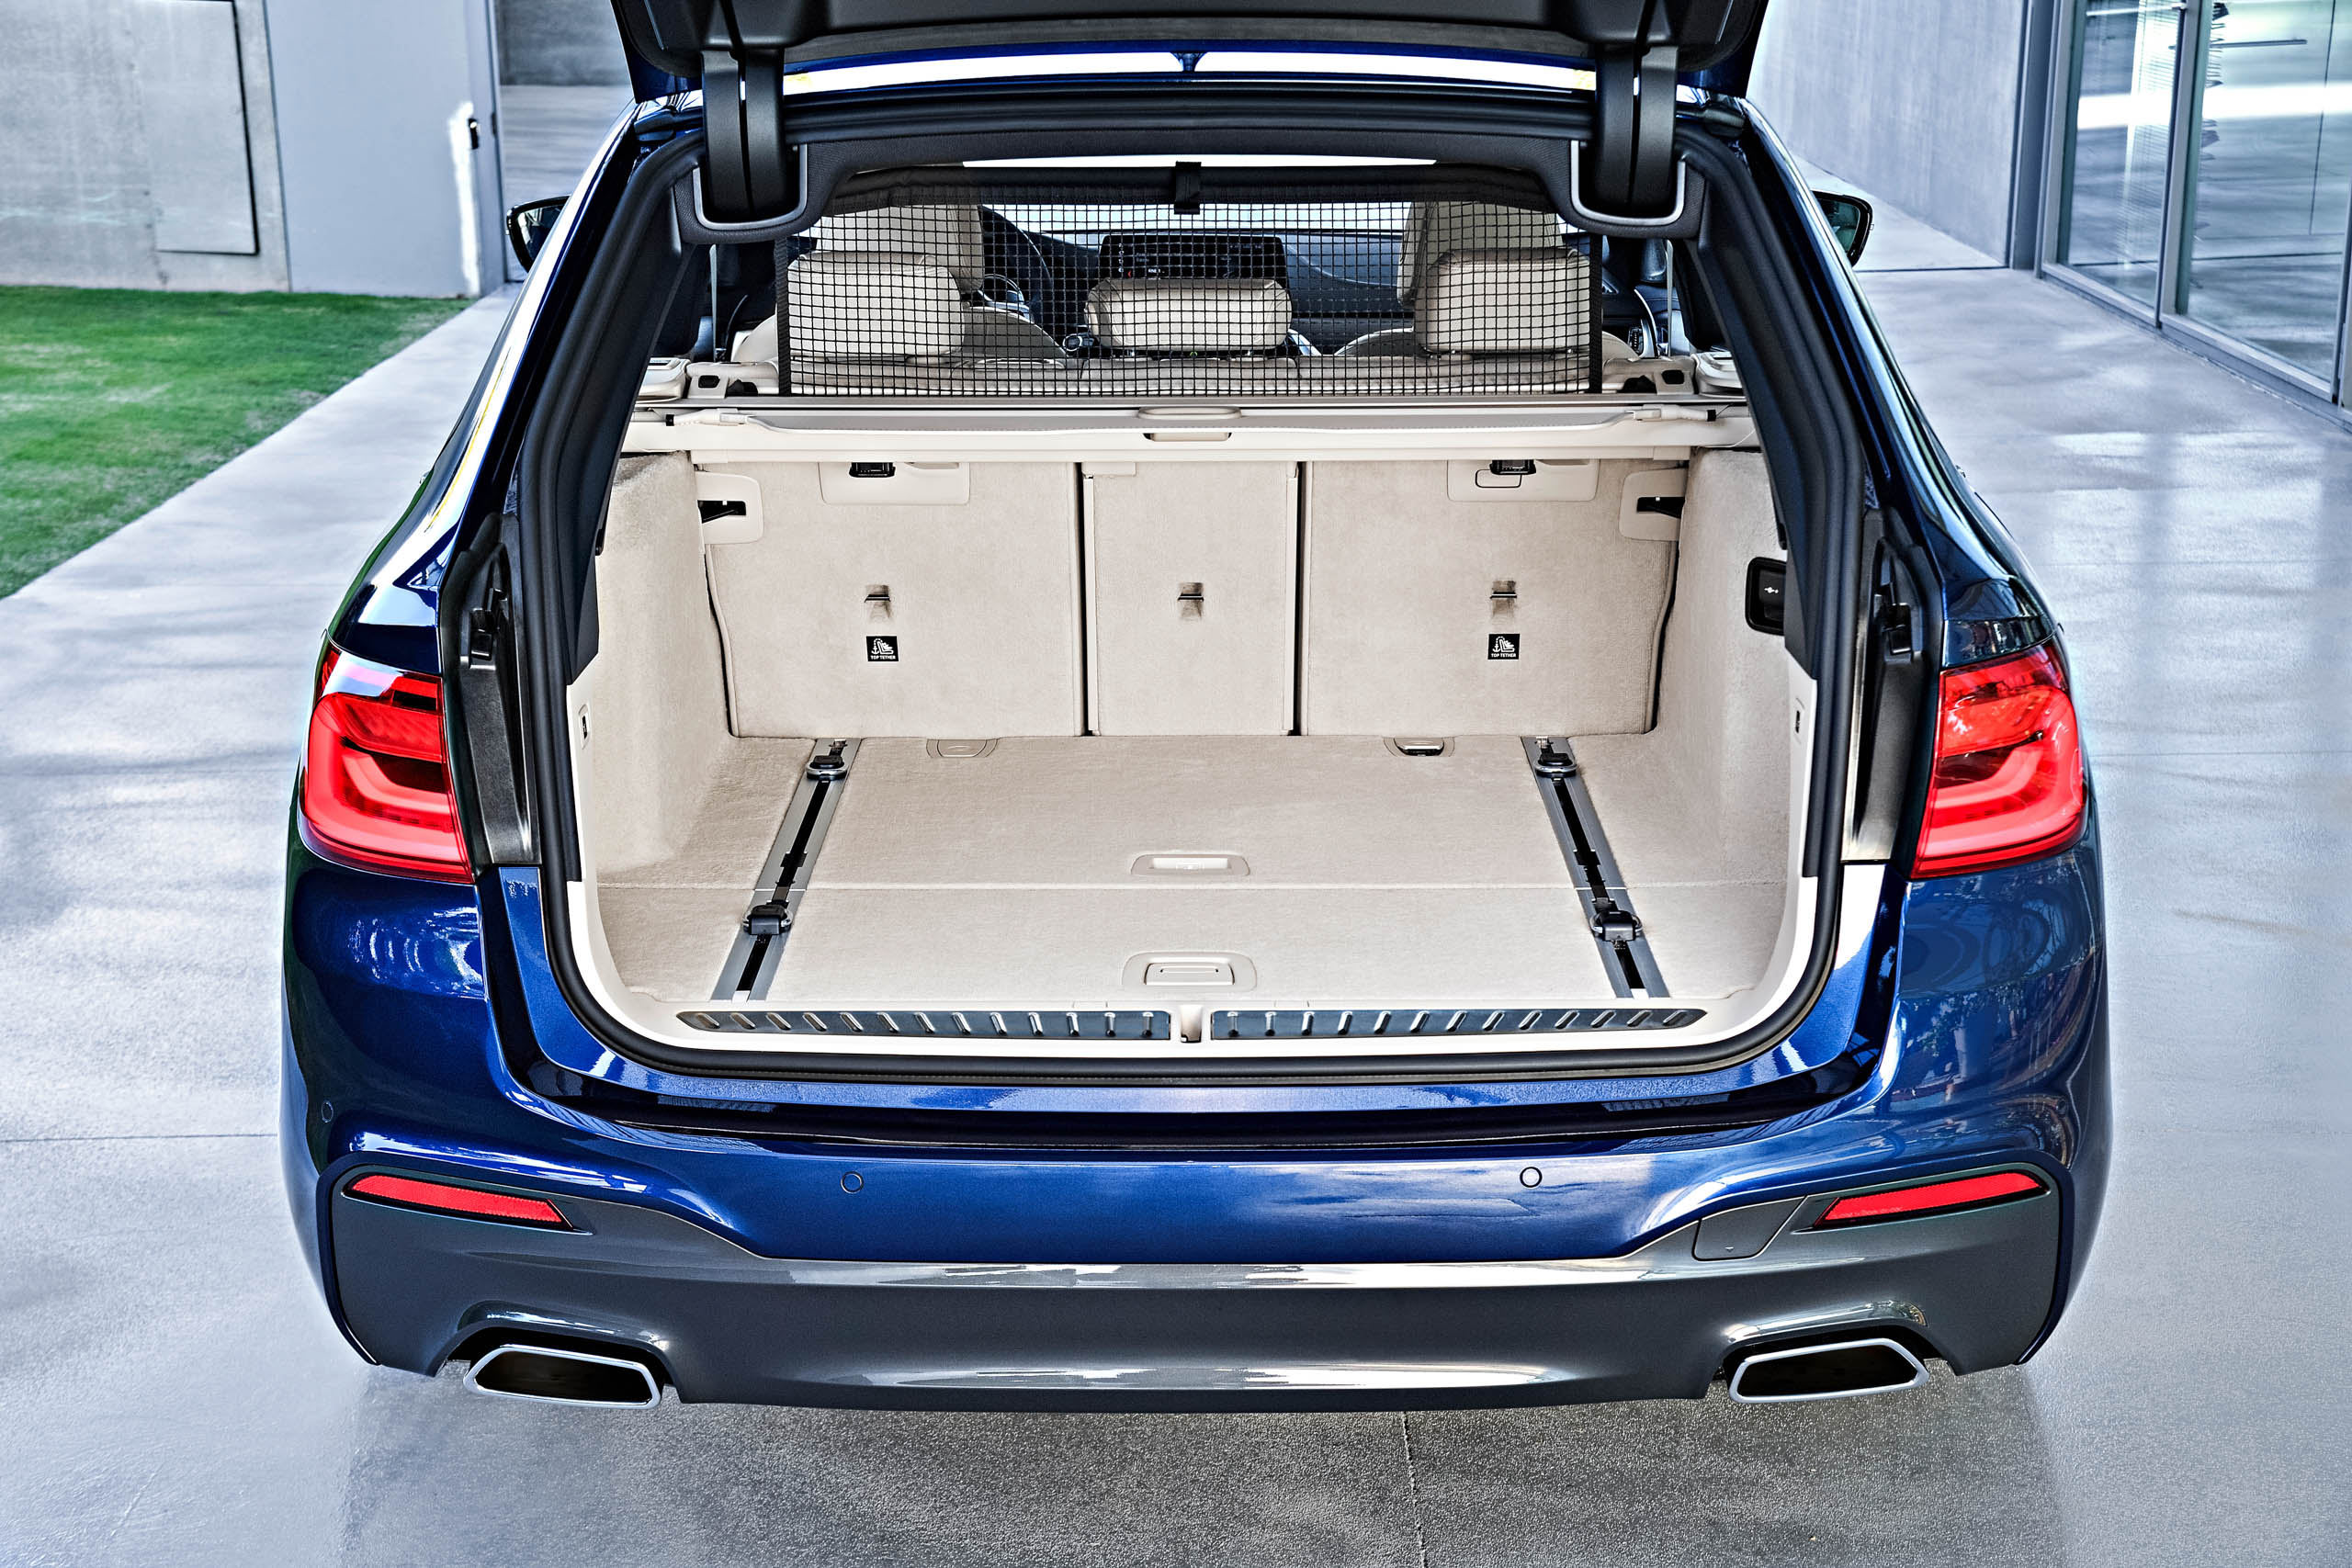 g31 bmw 5 series touring unveiled 1 700 litre boot paul tan image 610314. Black Bedroom Furniture Sets. Home Design Ideas